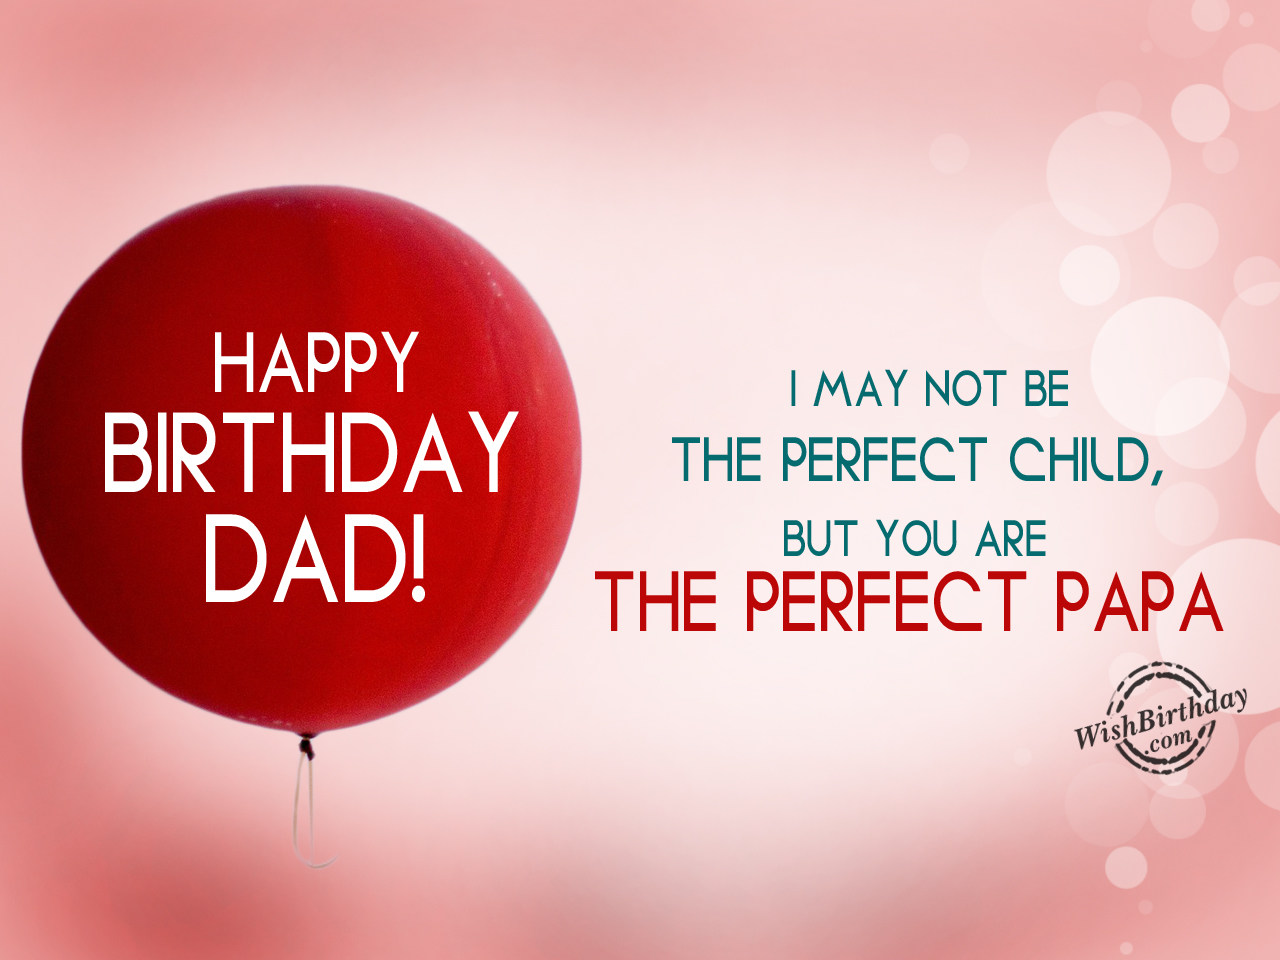 Wishing you a very Happy Birthday Dad